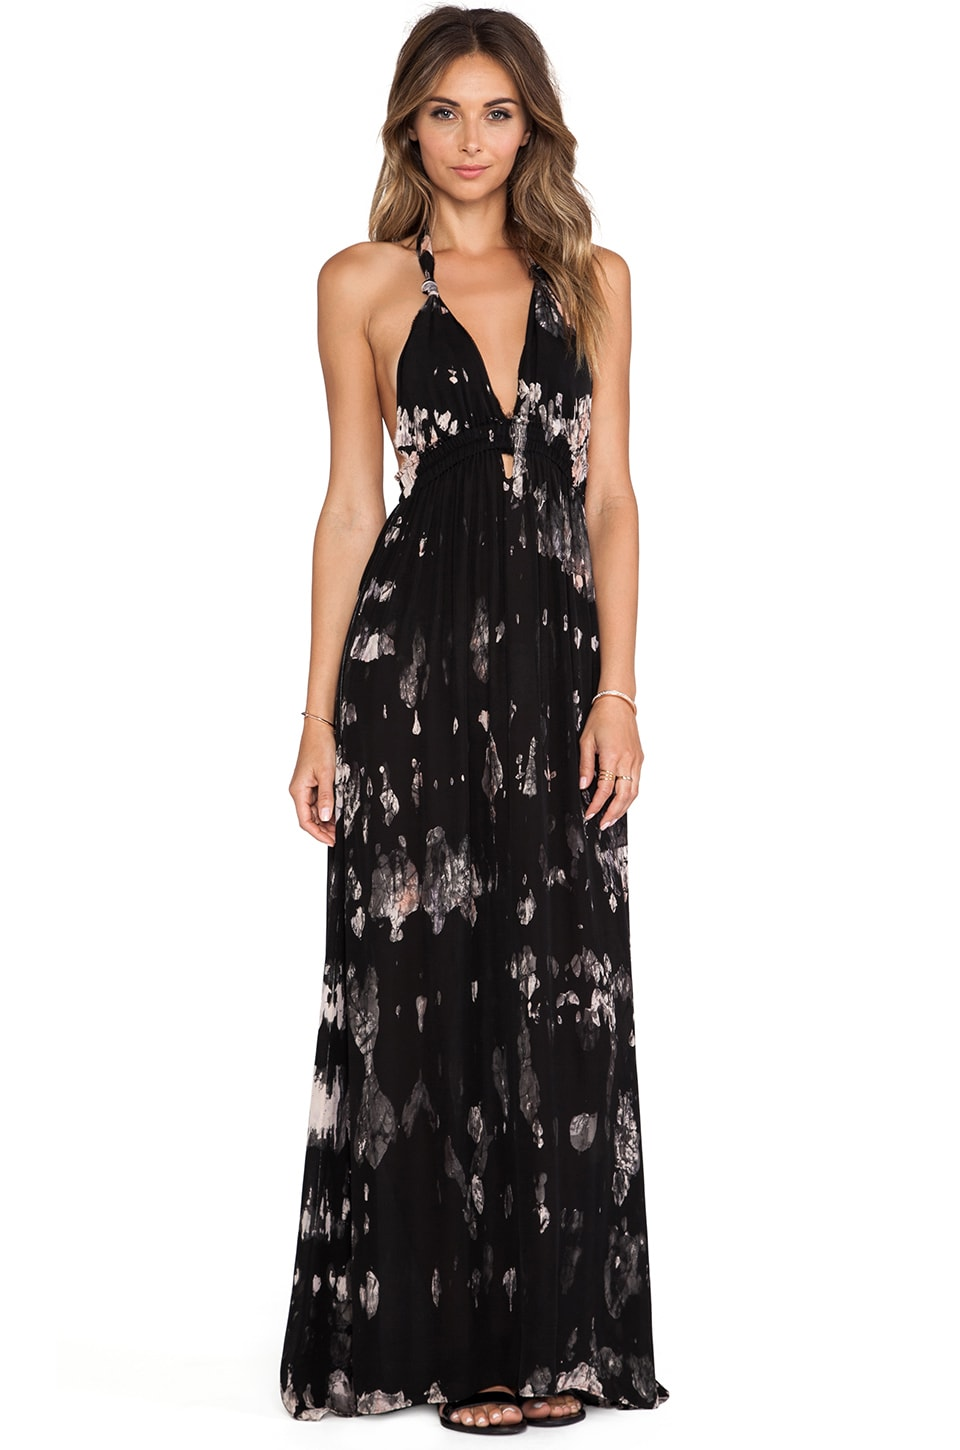 LoveShackFancy Midnight Floral Batik Love Dress in Black & Blush